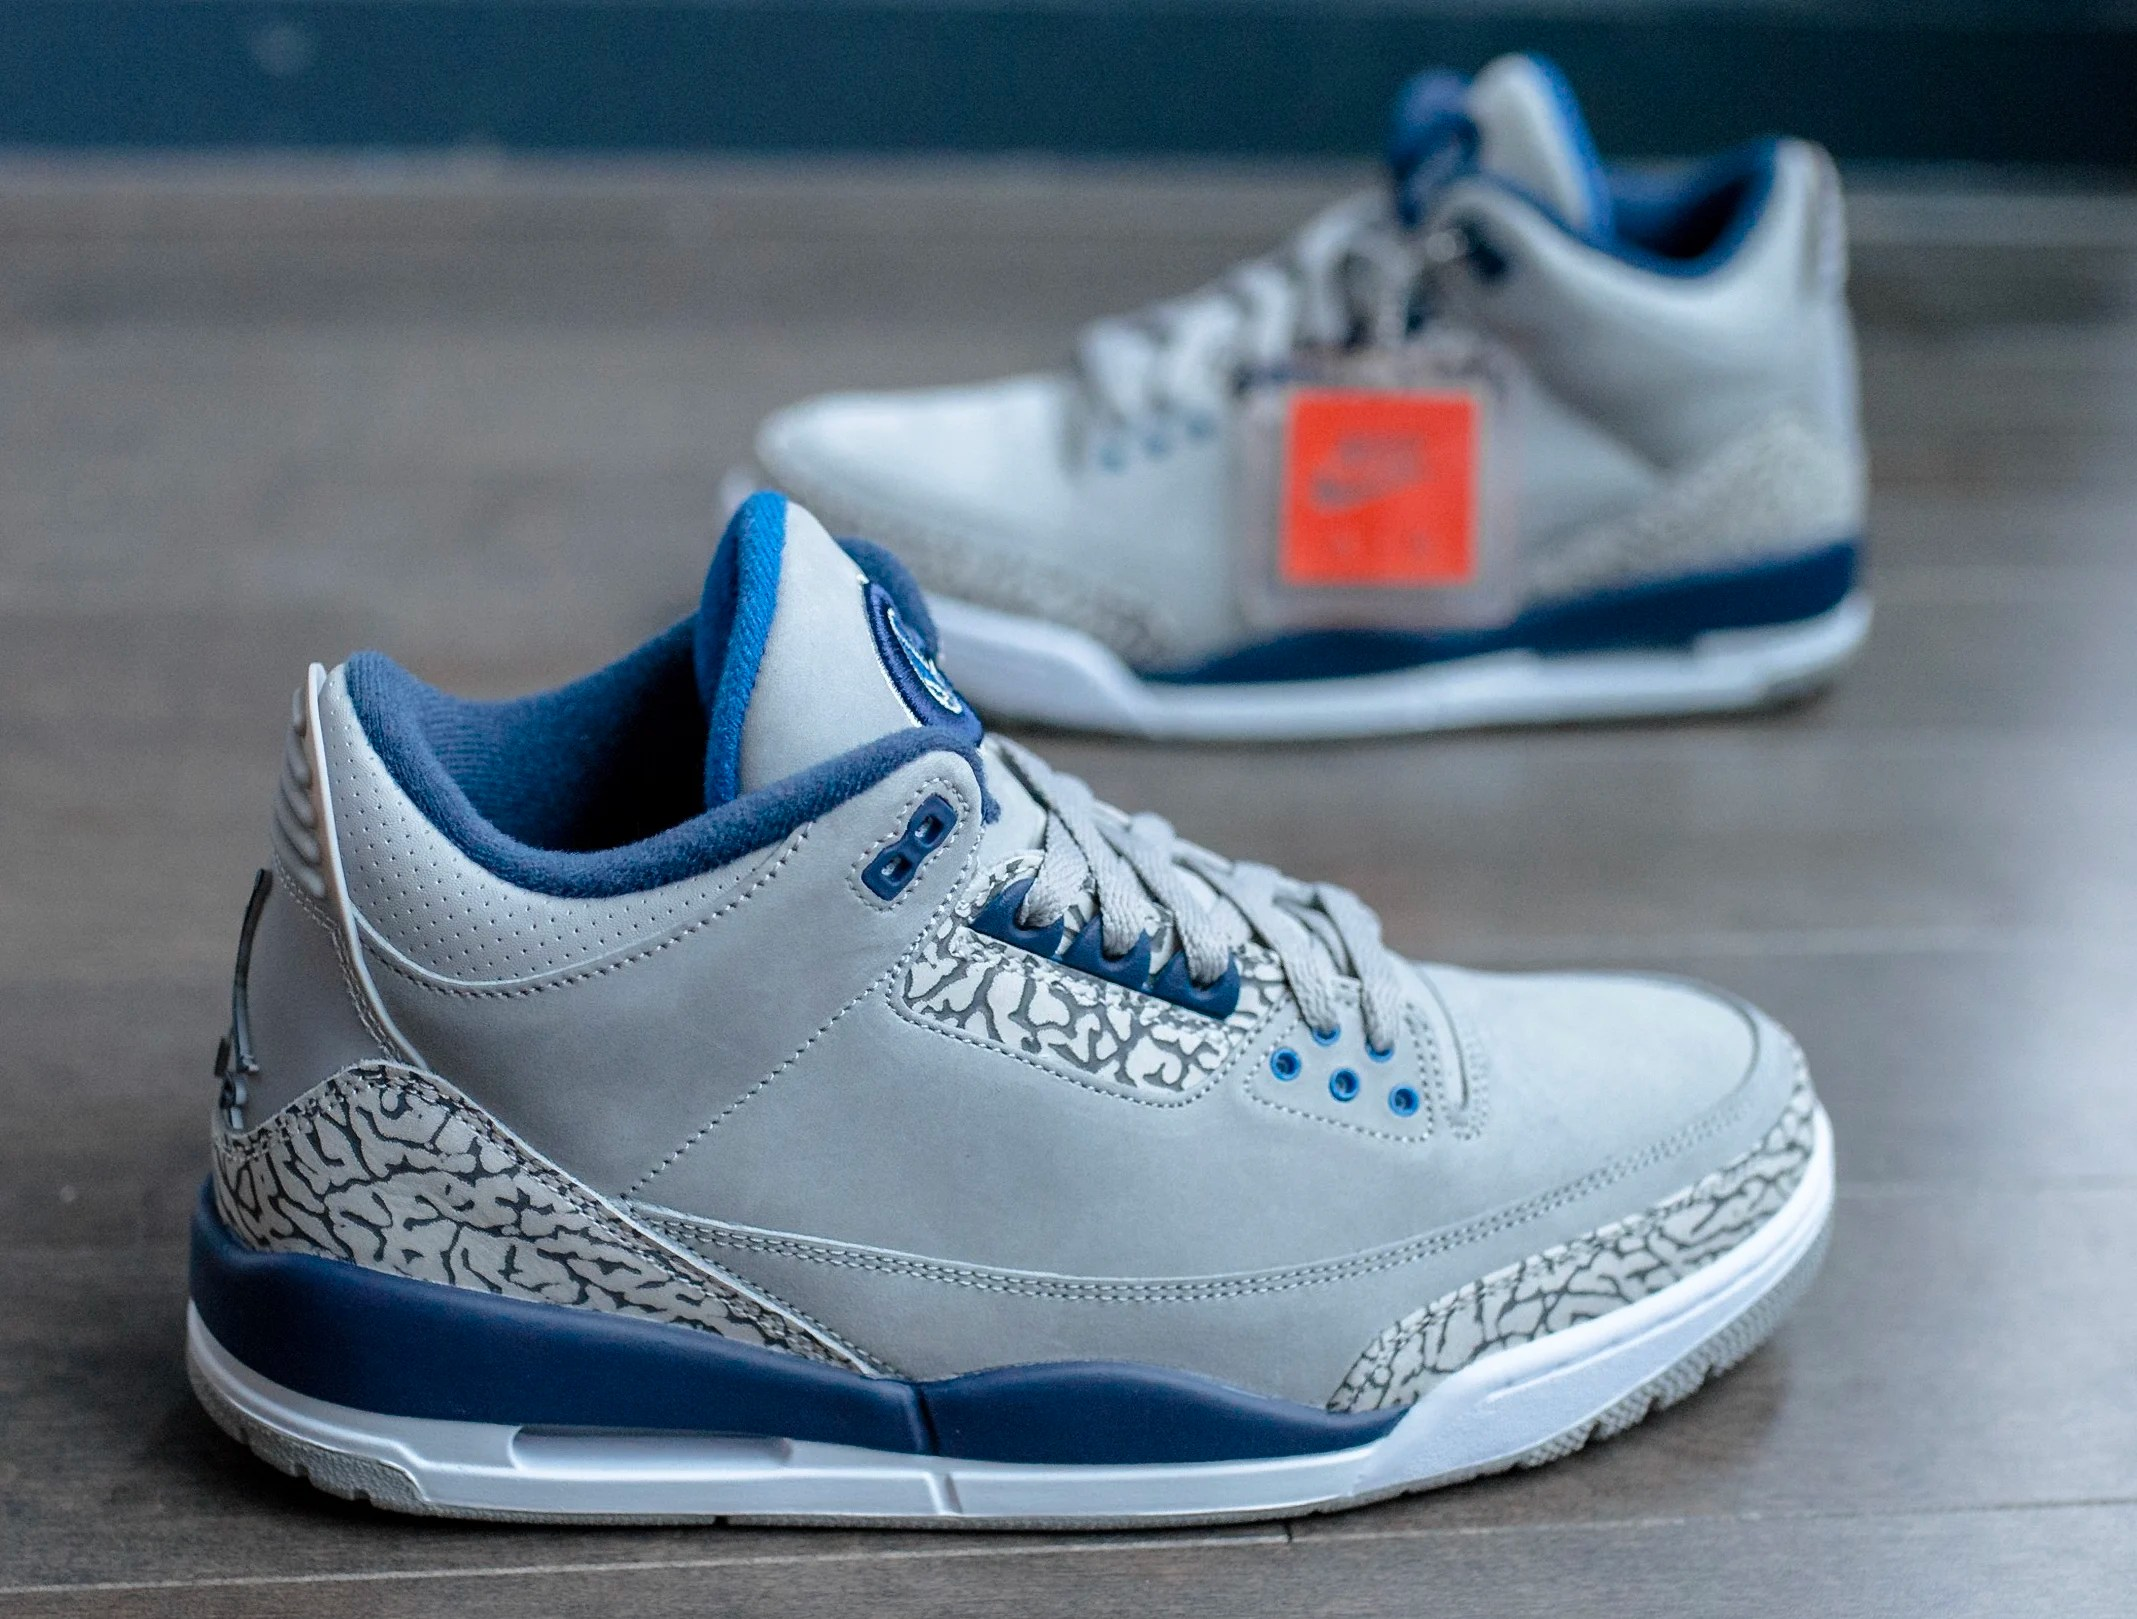 Air Jordan 3  Georgetown Hoyas  PE Detailed Images   Sole Collector OG details on the PE pair